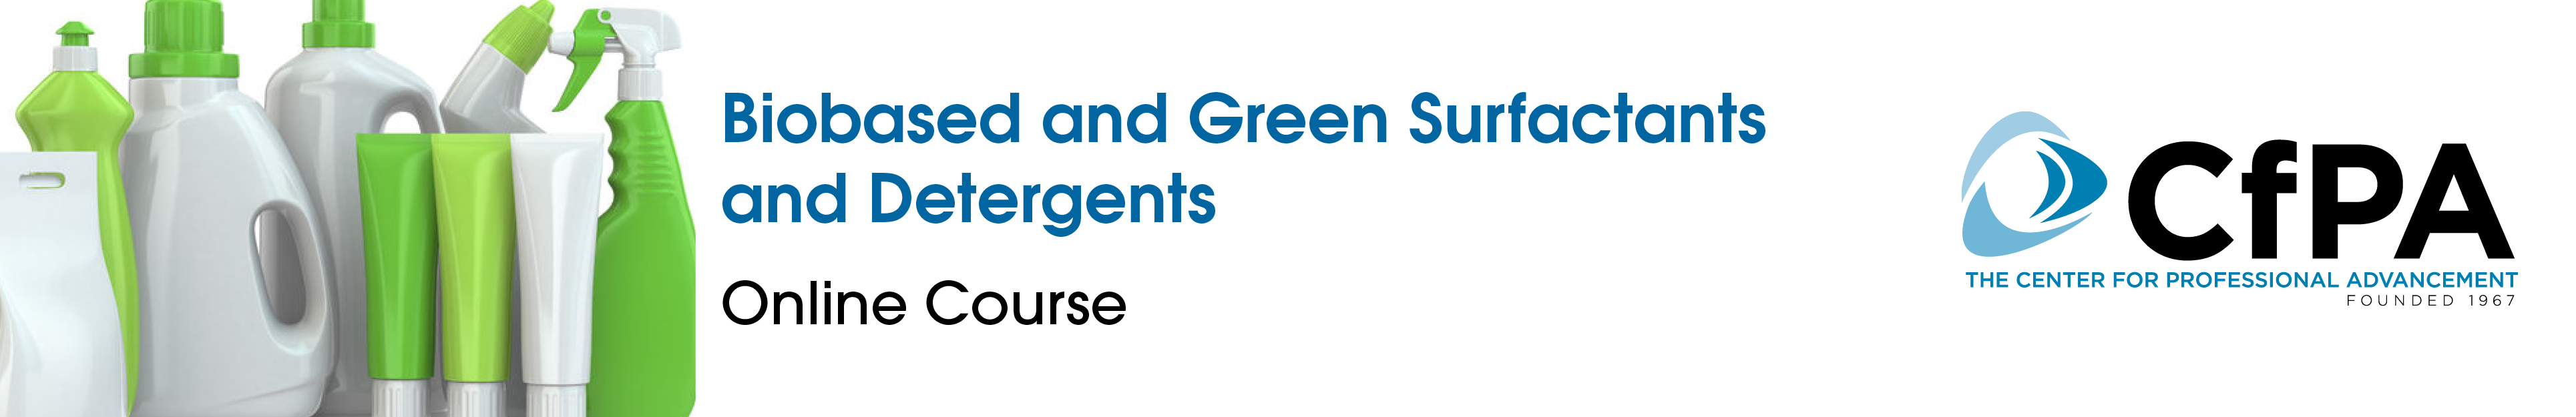 Biobased and Green Surfactants and Detergents